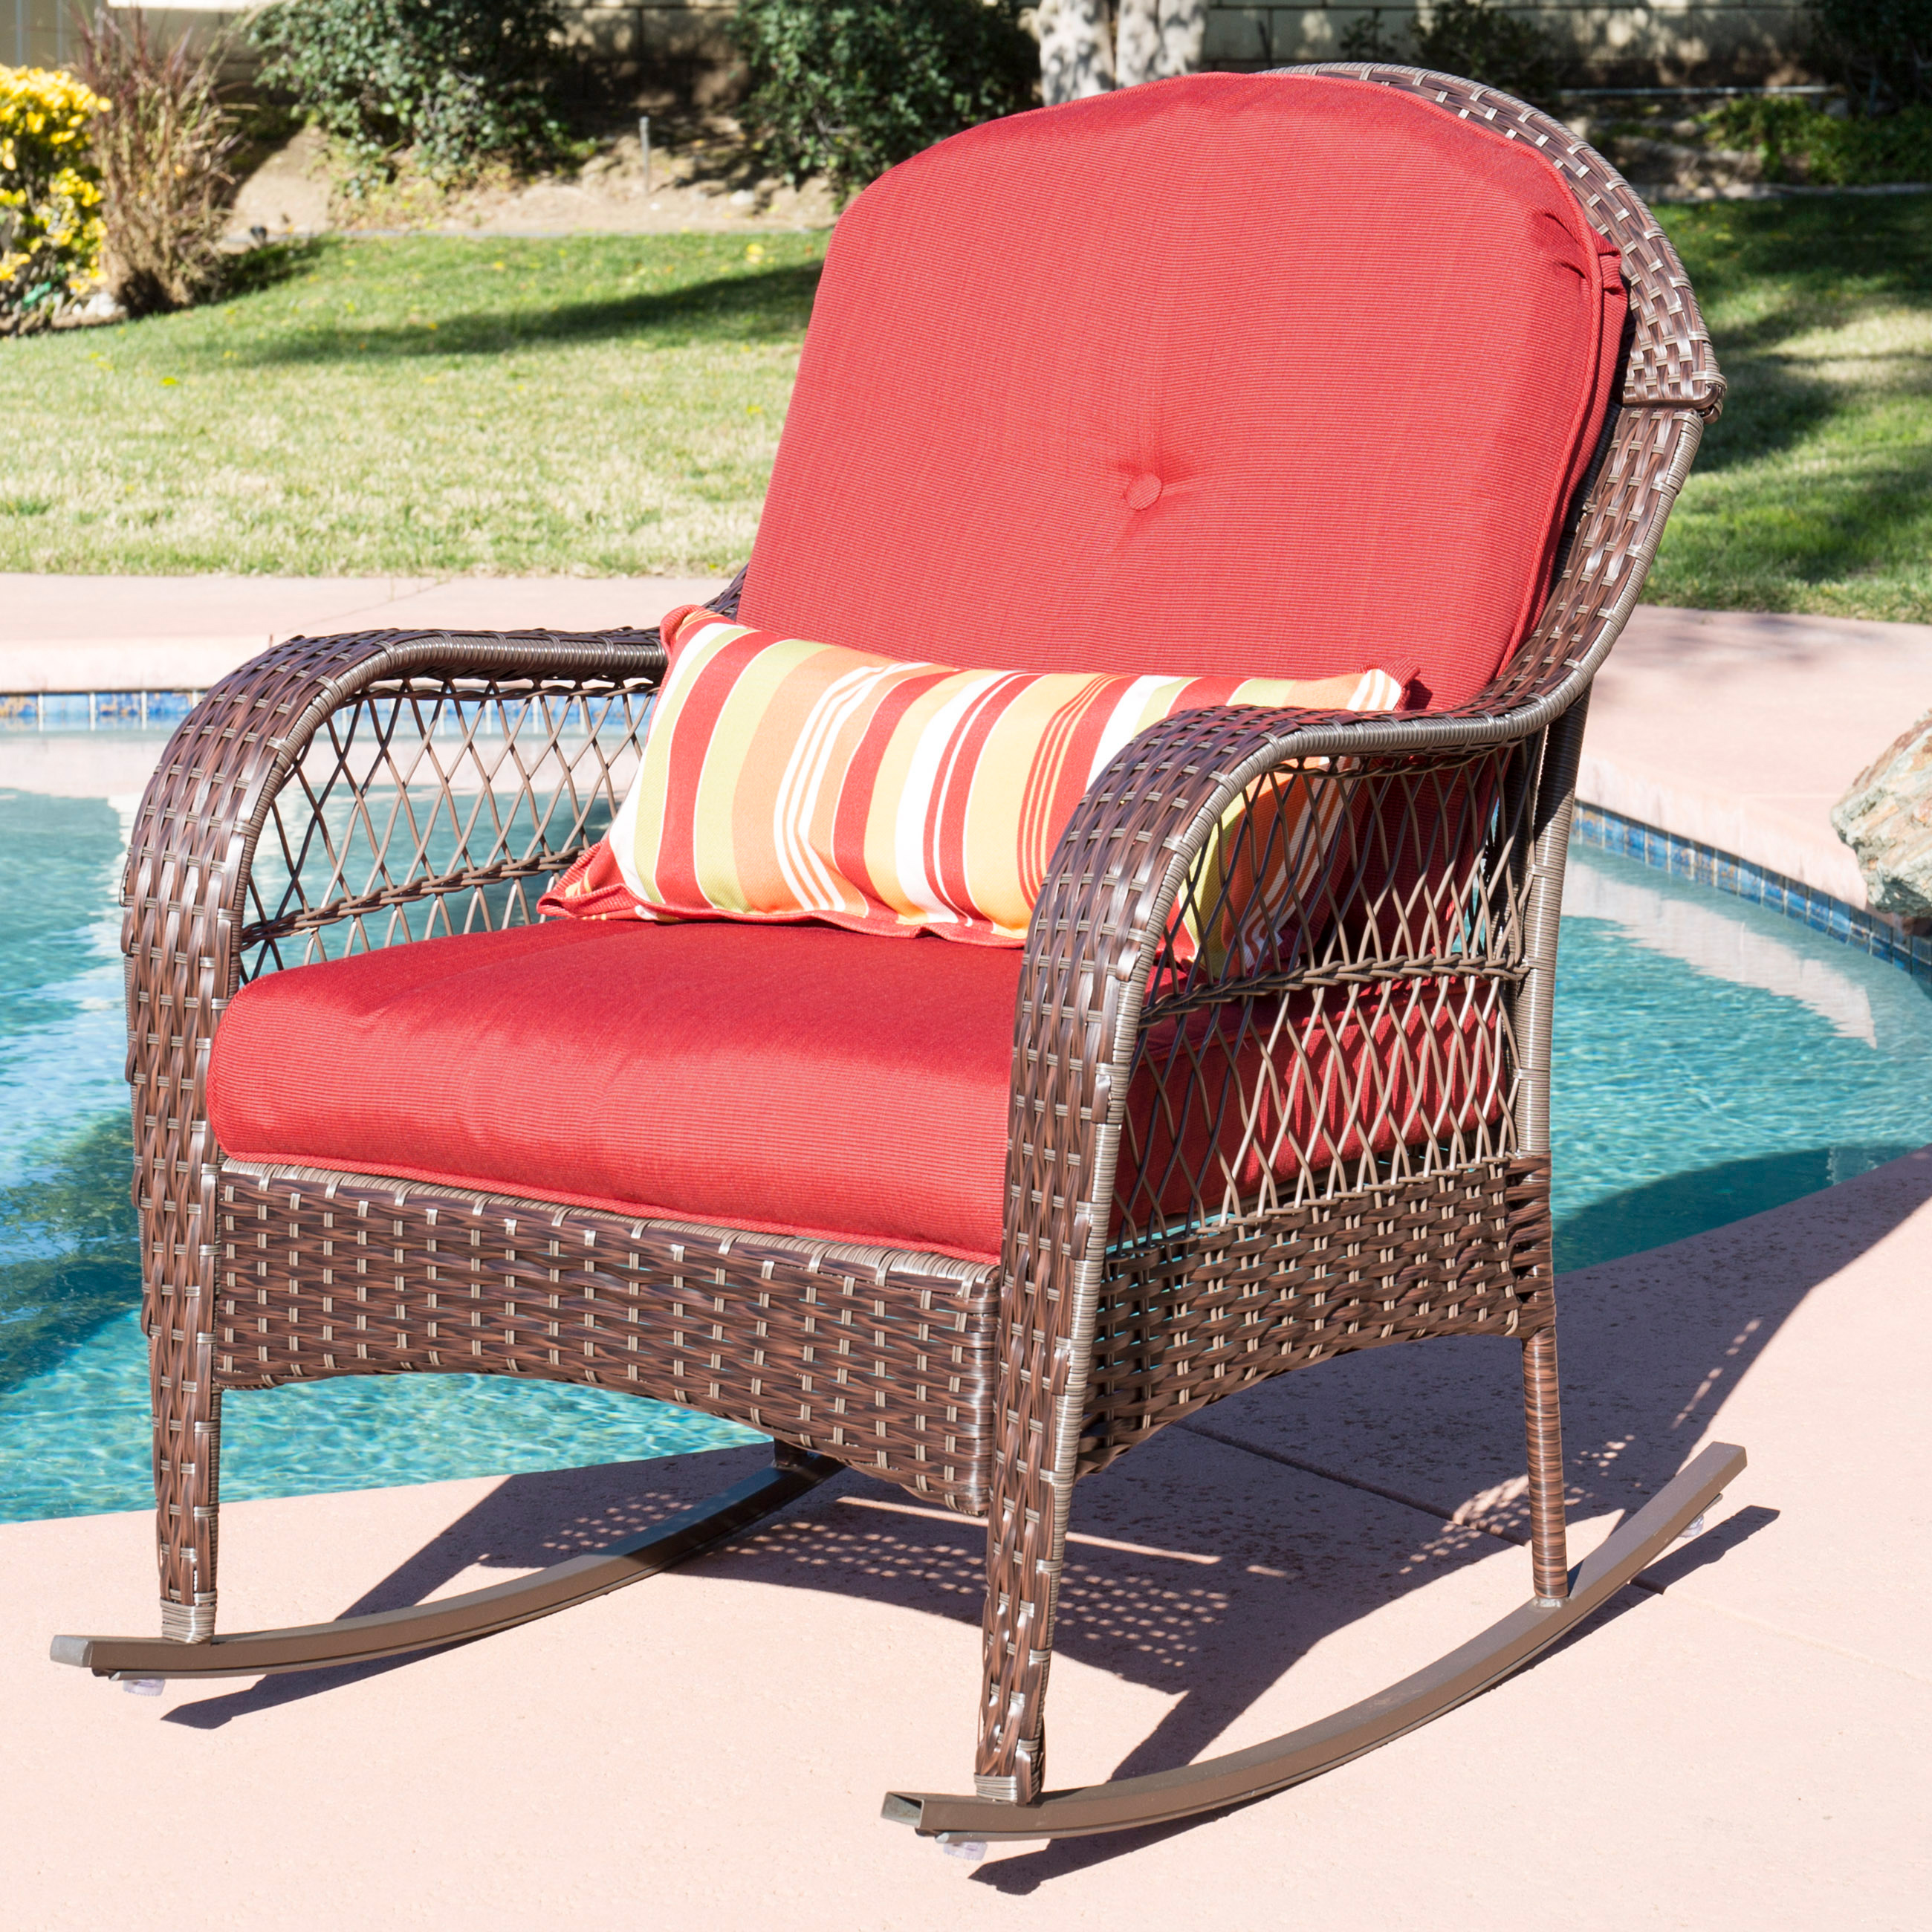 Best Choice Products Wicker Rocking Chair Patio Porch Deck Furniture All Weather Proof  W/ Cushions